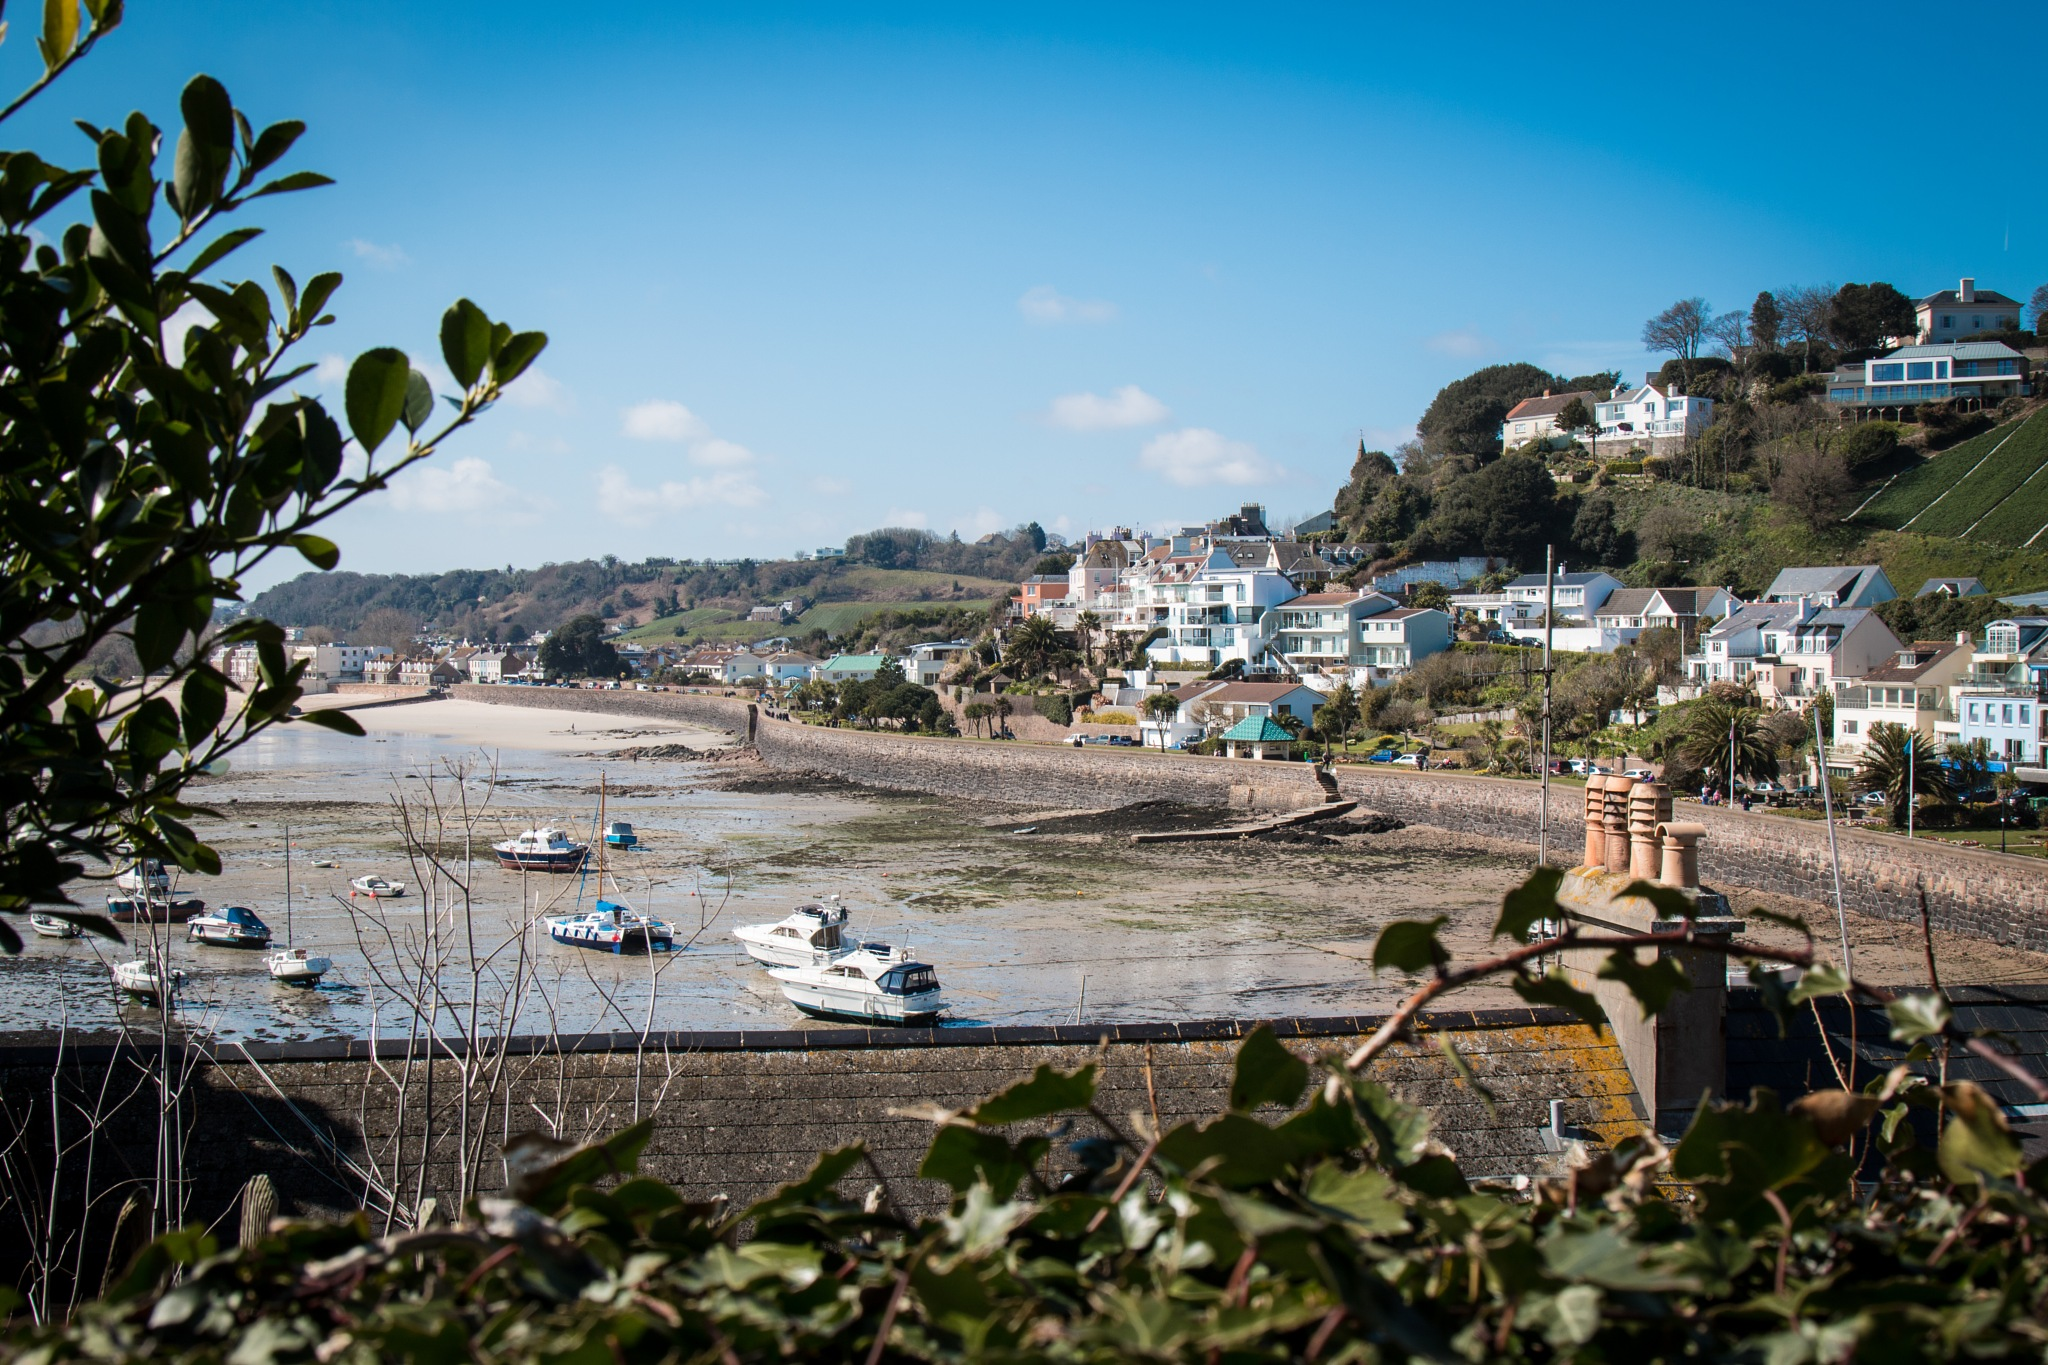 The bay at Gorey Castle by Allan Love